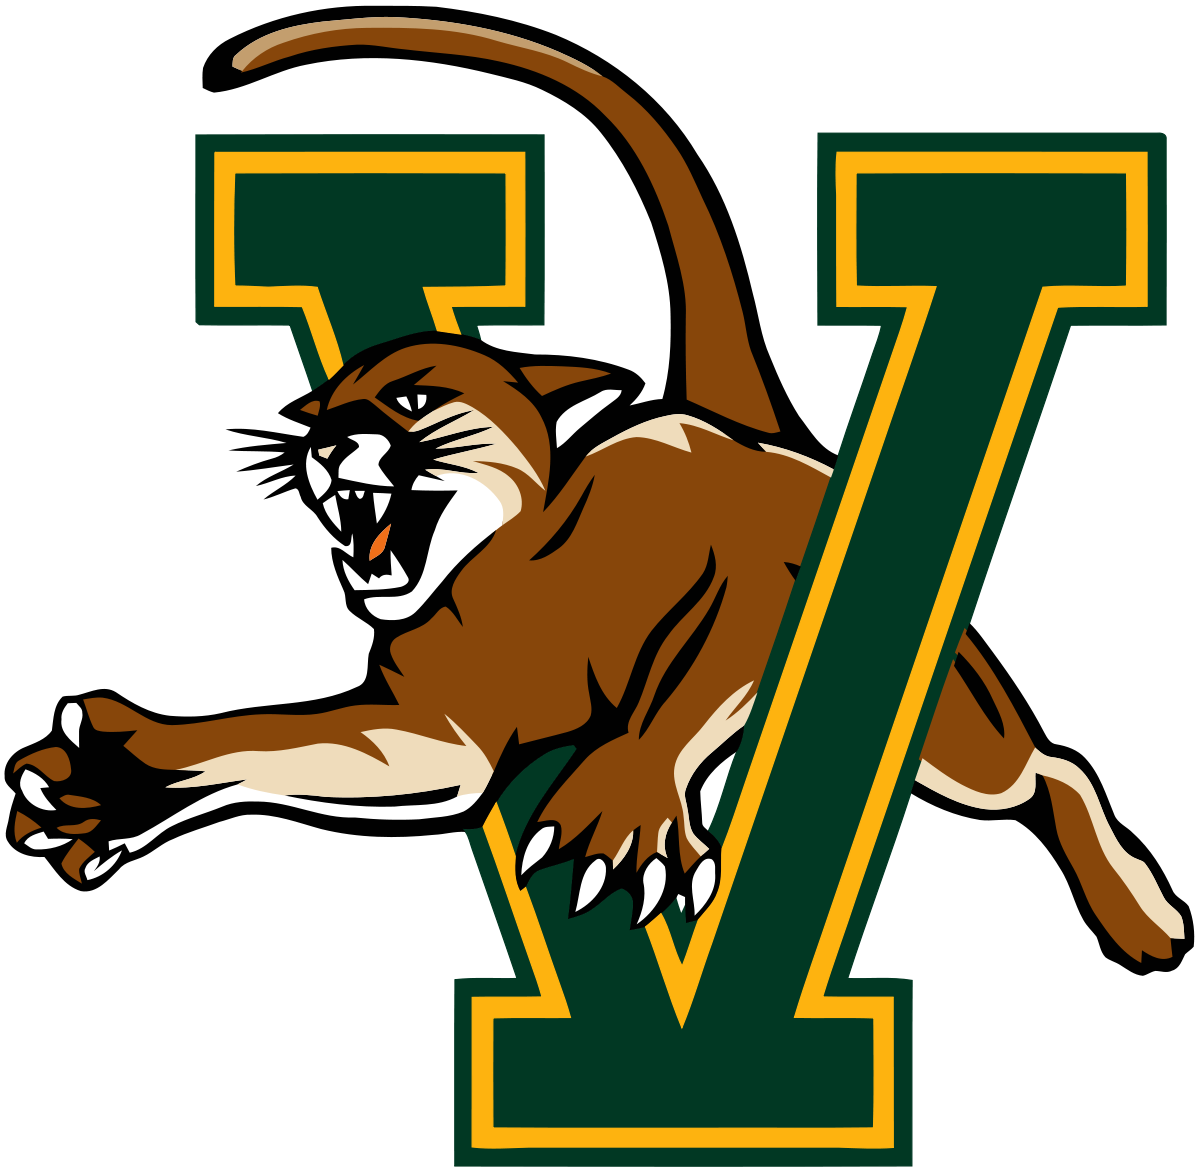 clip art royalty free download Living clipart mascot. Know thy enemy uvm.